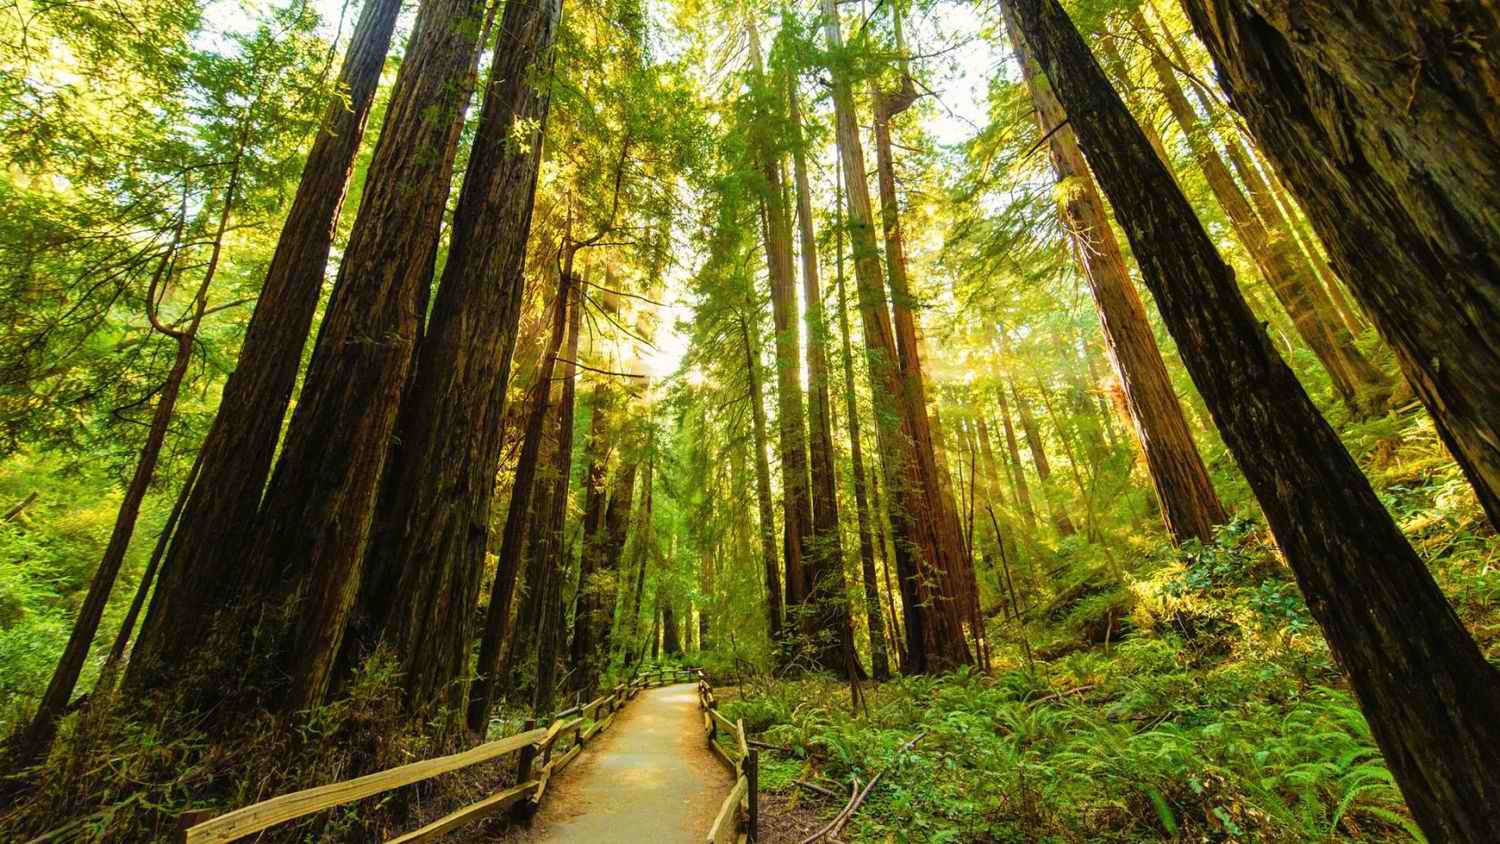 FREE National Park Day At Muir Woods January 2020